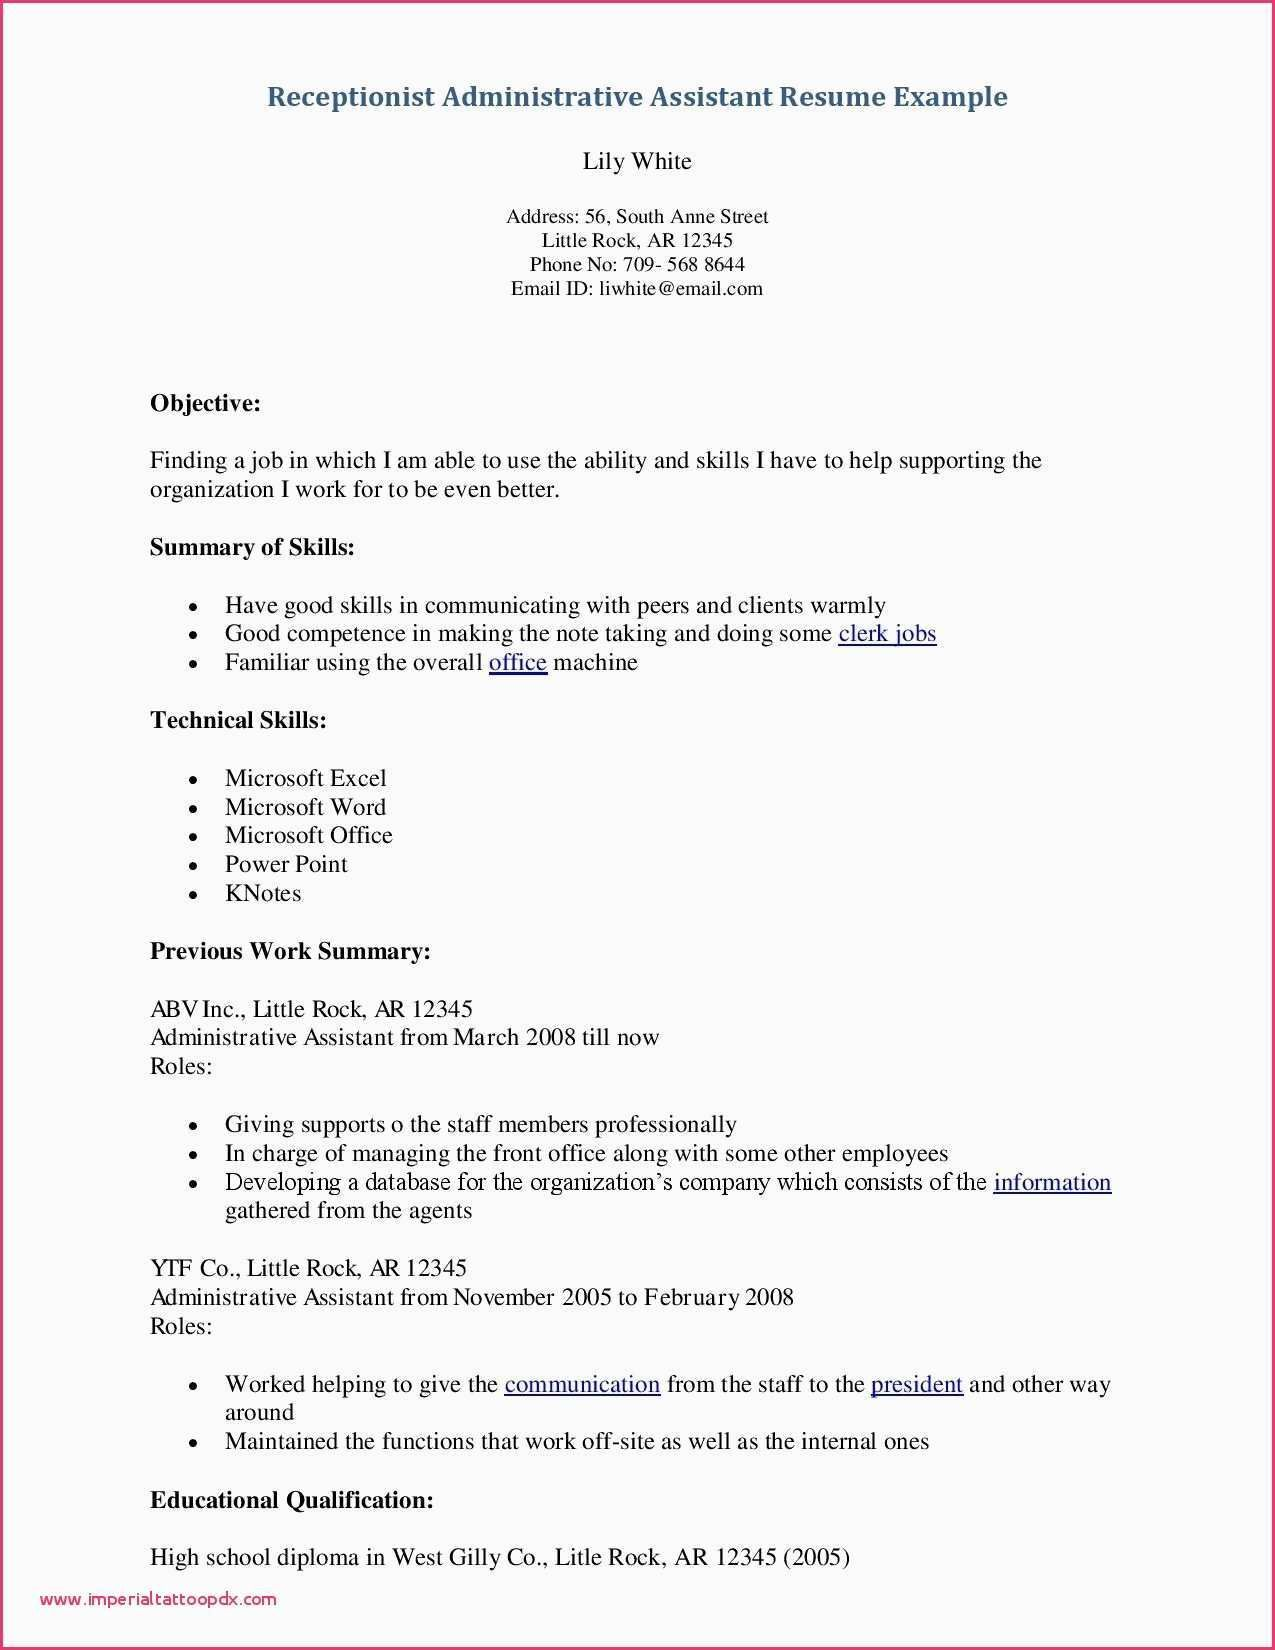 71 Best Of Stock Of Unit Secretary Resume Objective Examples Check More At Https Www Ourpetscrawley Com 71 Best Of Stock Of Unit Secretary Resume Objective Ex